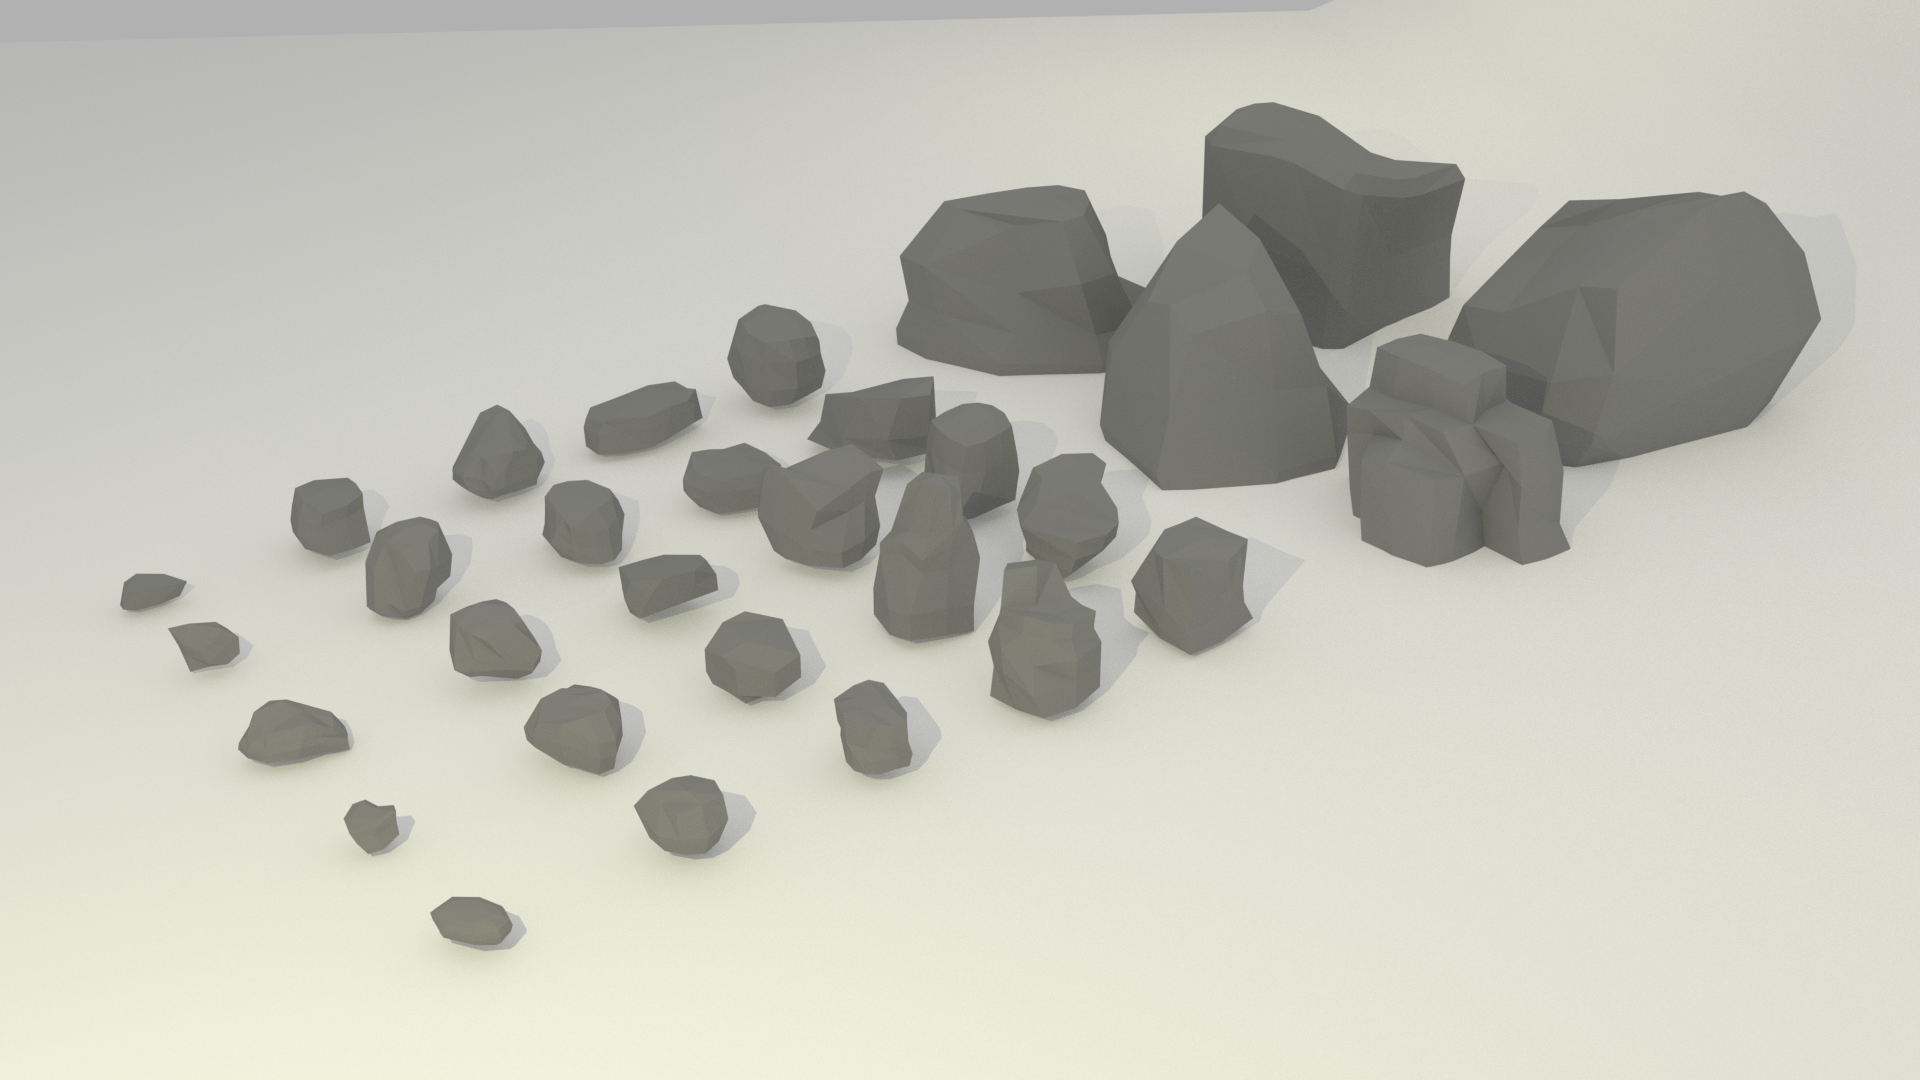 Free Low Poly Assets